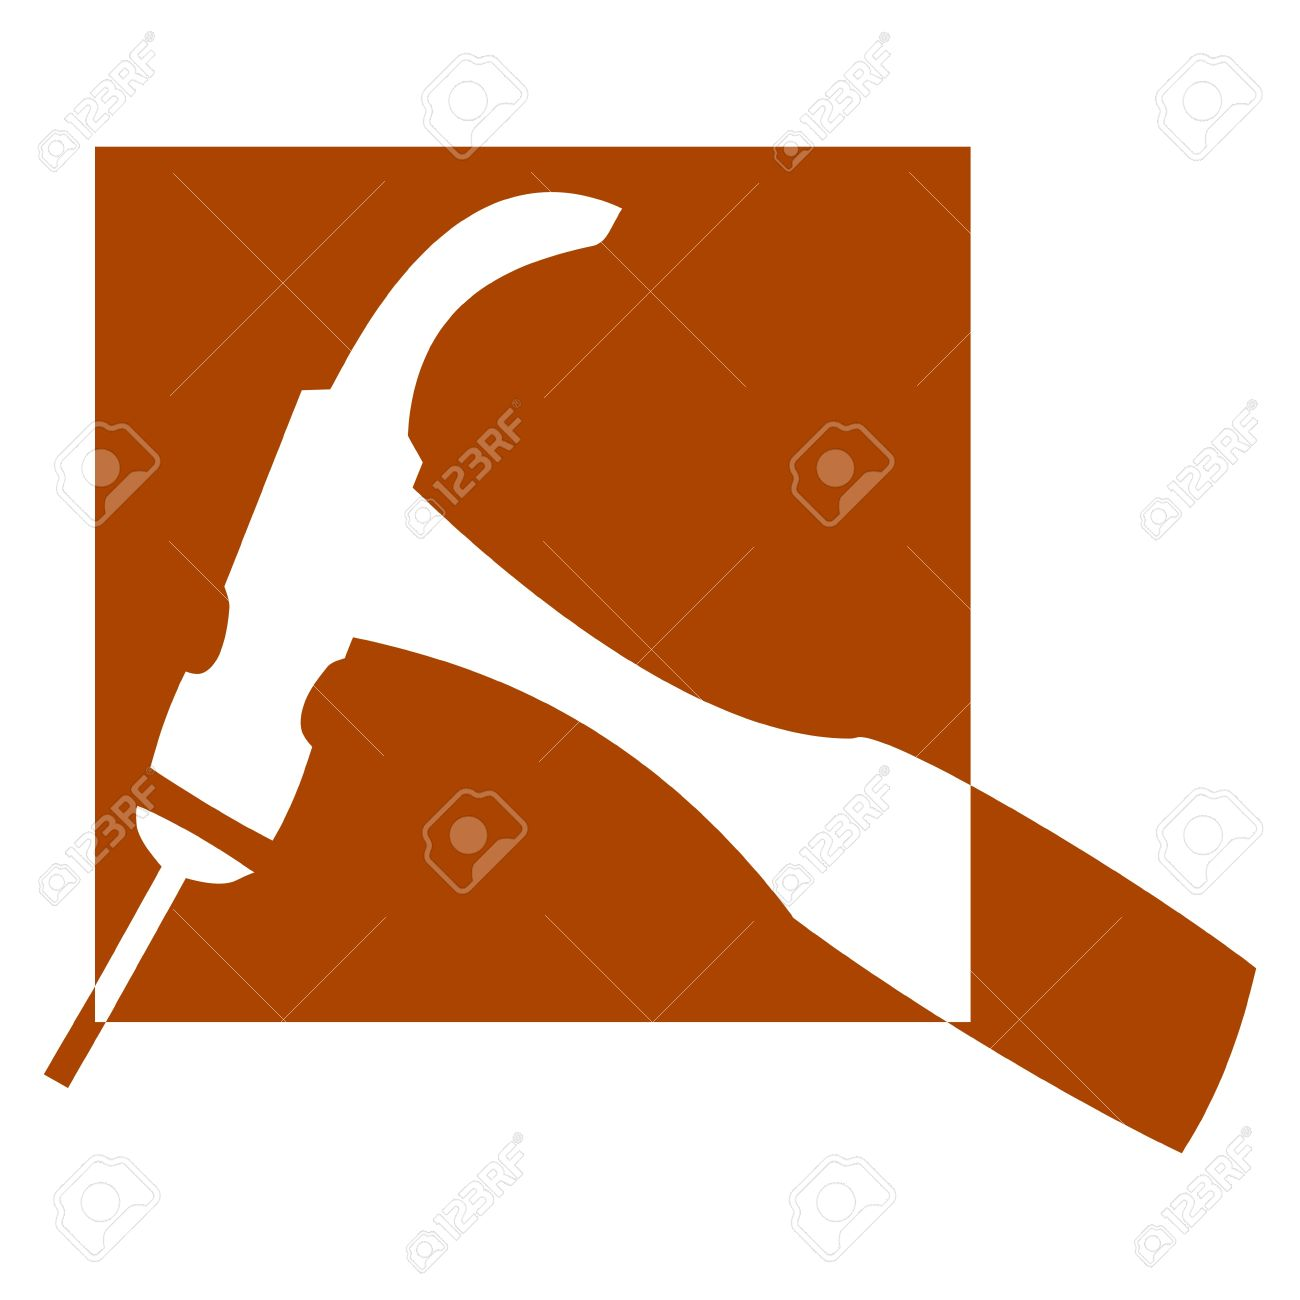 Logo for carpenters and joiners - hammer - Illustration Stock Vector - 12431156